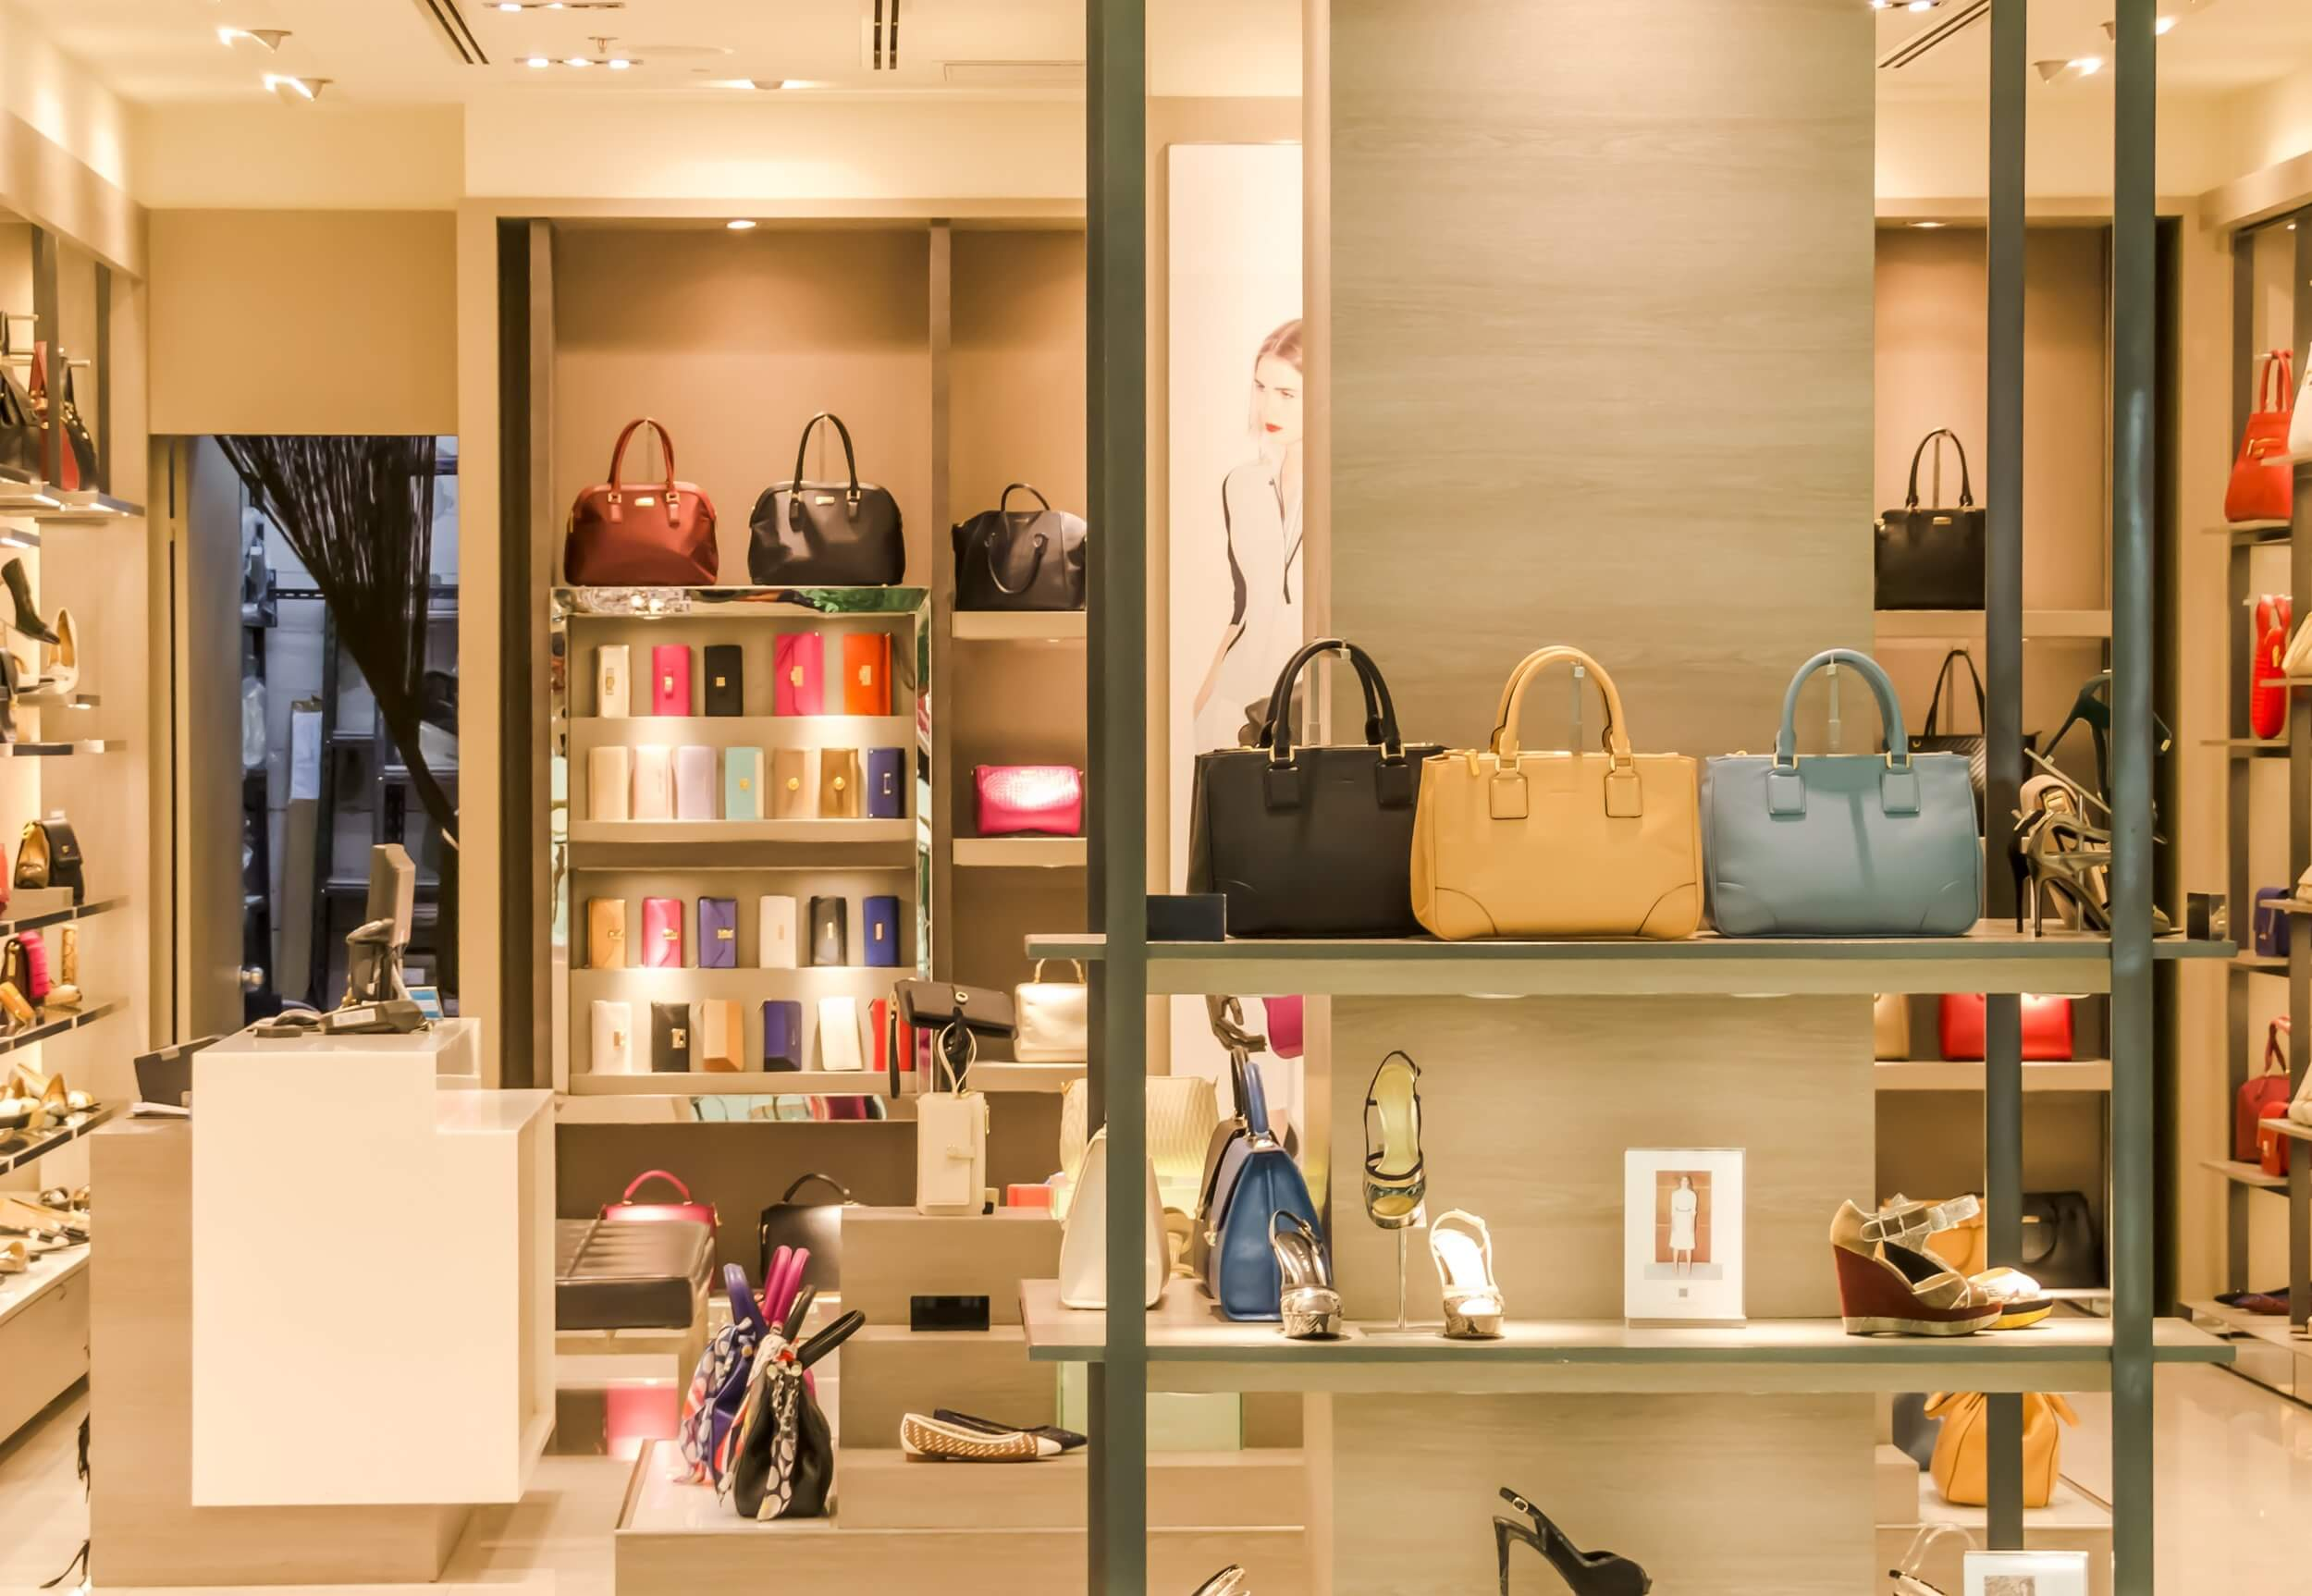 Dynamic pricing for retail: smart retailers have smart pricing